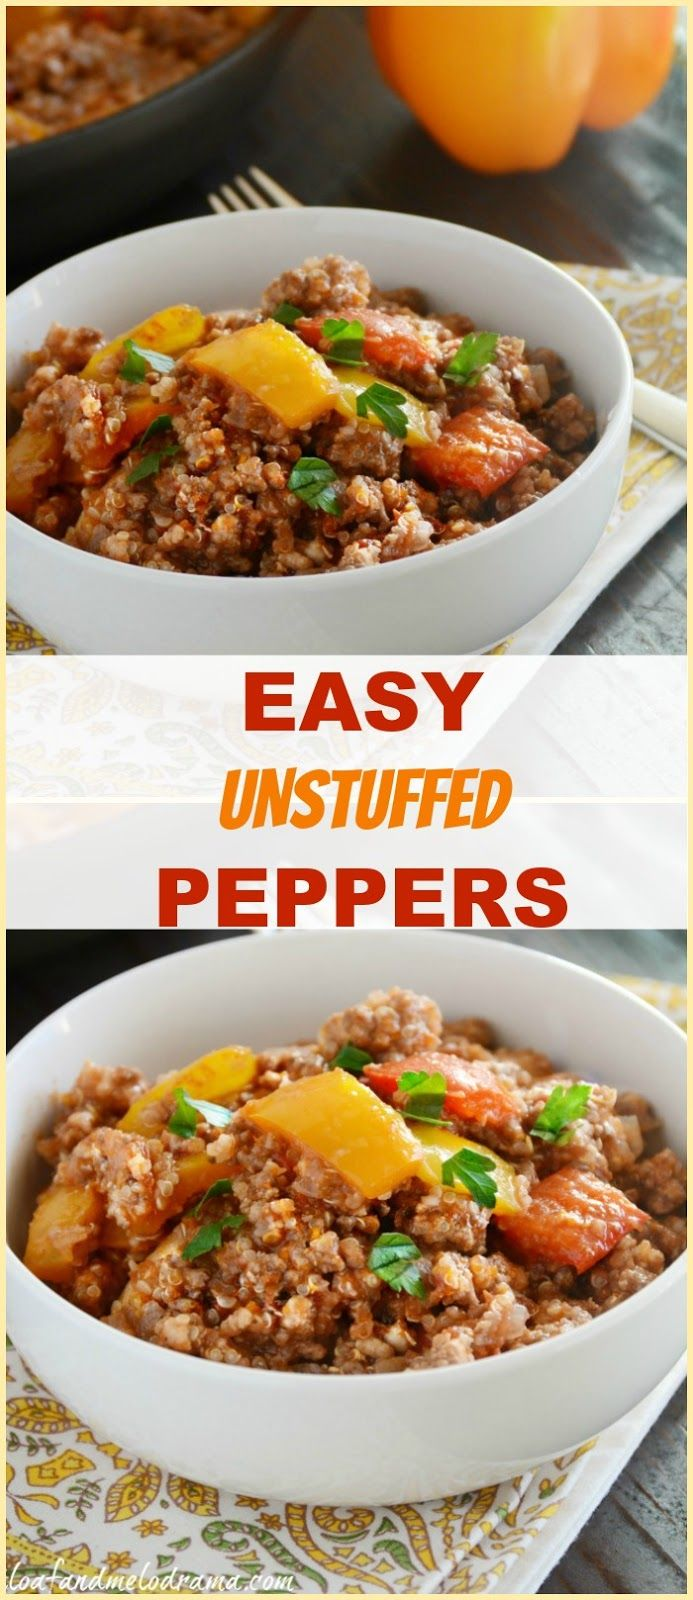 Easy Unstuffed Peppers made in one pan, with beef, pork and quinoa for a gluten free, easy budget friendly dinner!